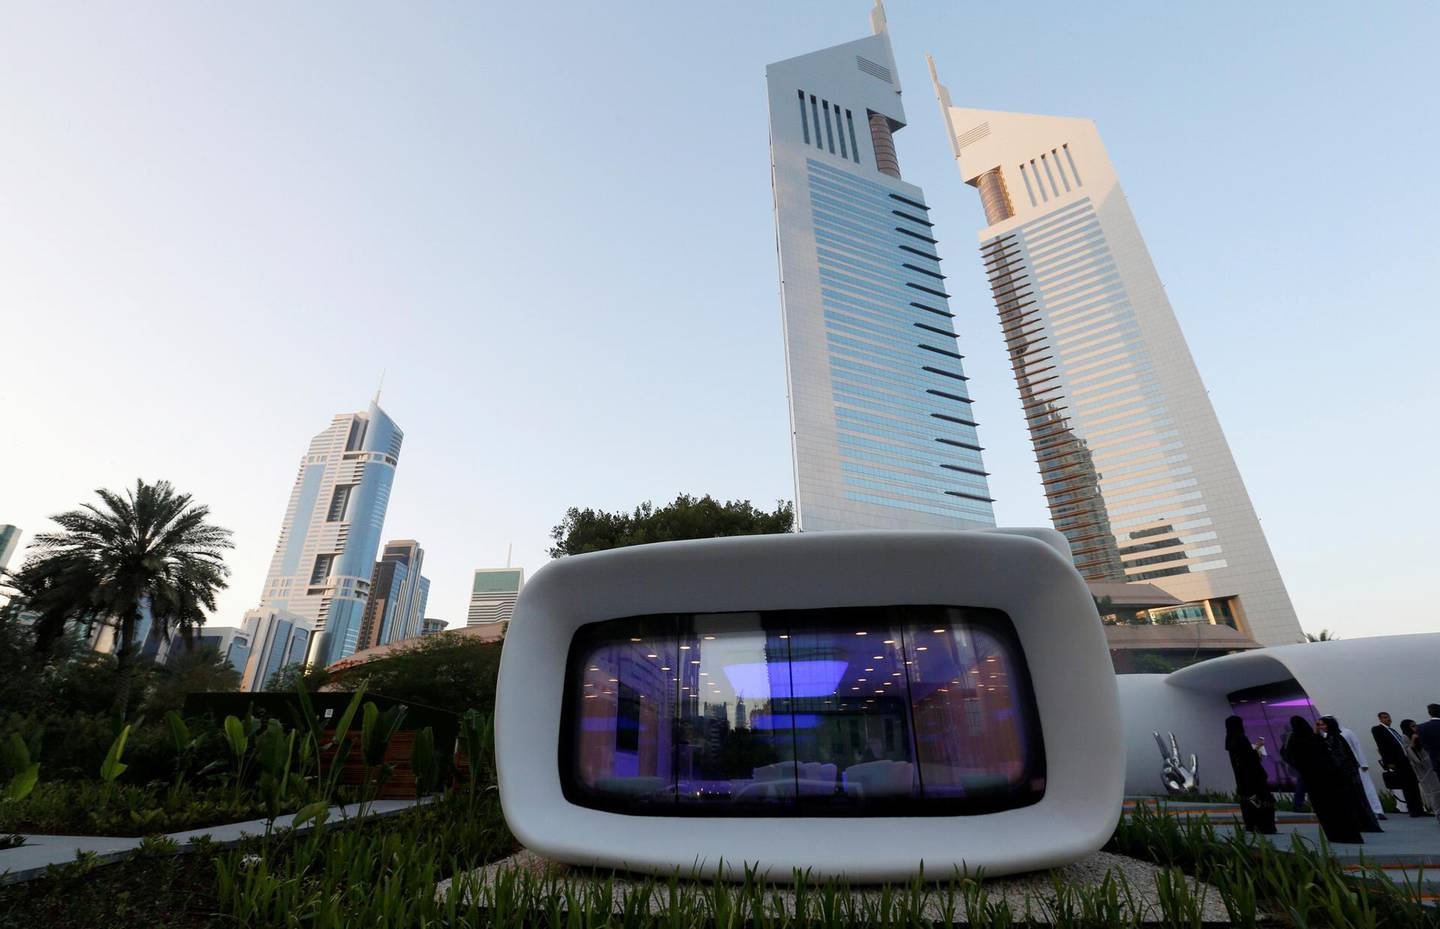 The world's first functional 3D printed offices are seen in Dubai May 23, 2016. REUTERS/Ahmed Jadallah - S1BETFWGFZAA